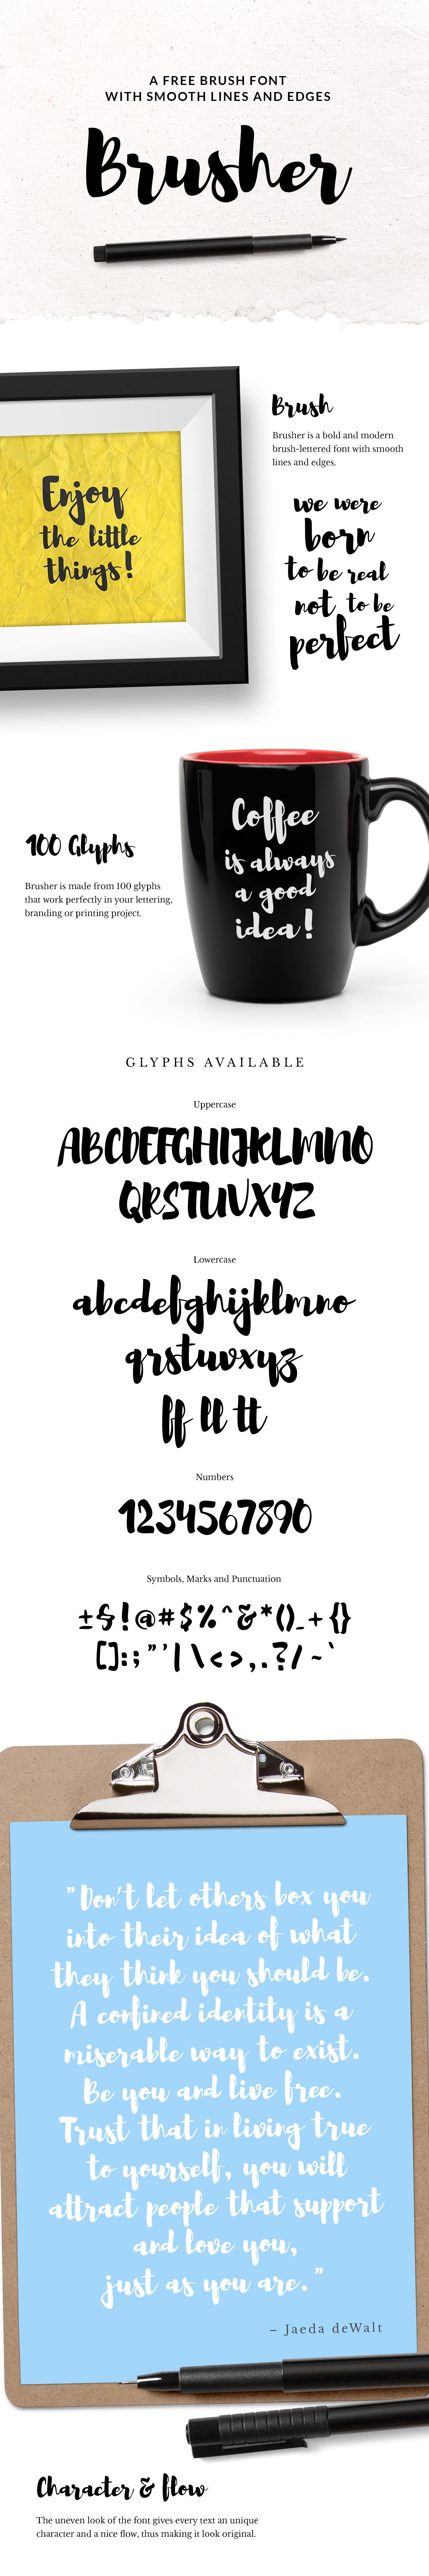 font free type Typeface Free font freebie HAND LETTERING Brush font